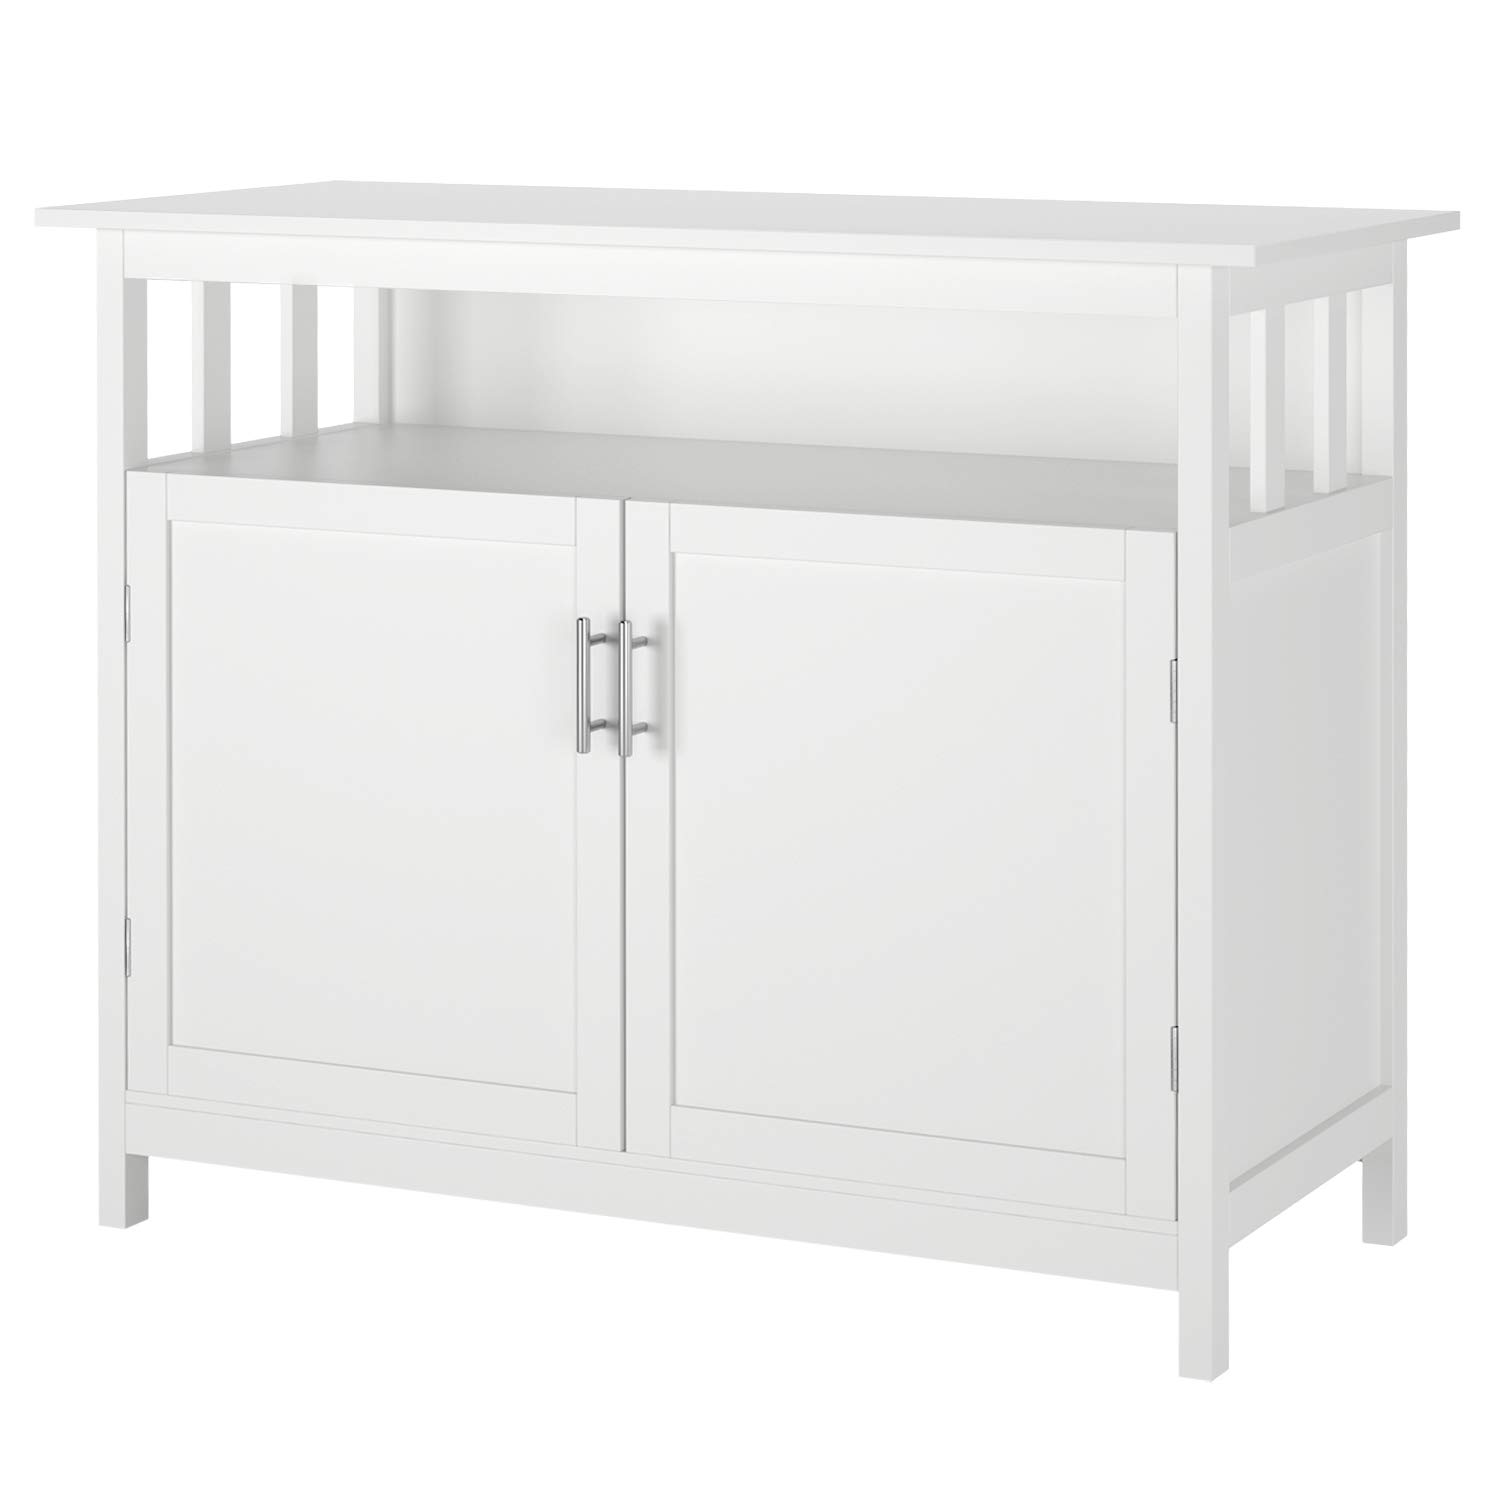 Homfa Kitchen Sideboard Storage Cabinet, Large Dining Buffet Server Cupboard Cabinet, Console Table with Display Shelf and Double Doors, White